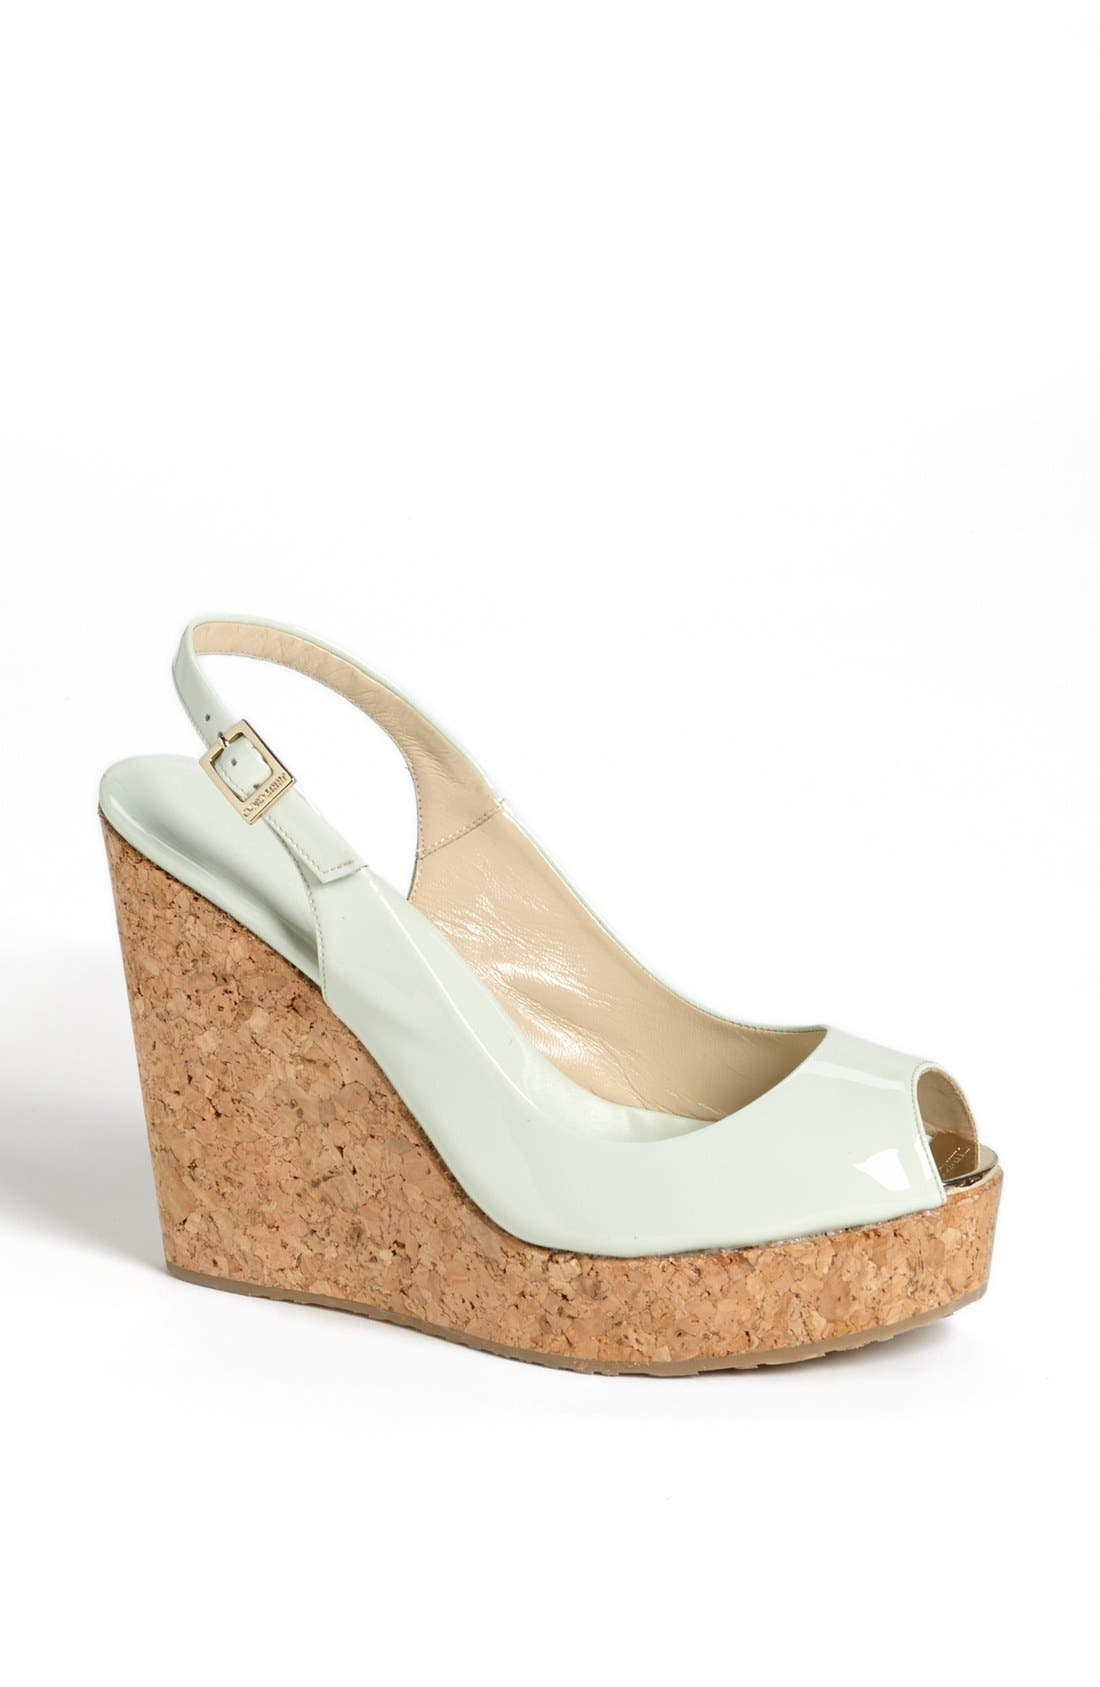 Alternate Image 1 Selected - Jimmy Choo 'Prova' Cork Slingback Wedge Sandal